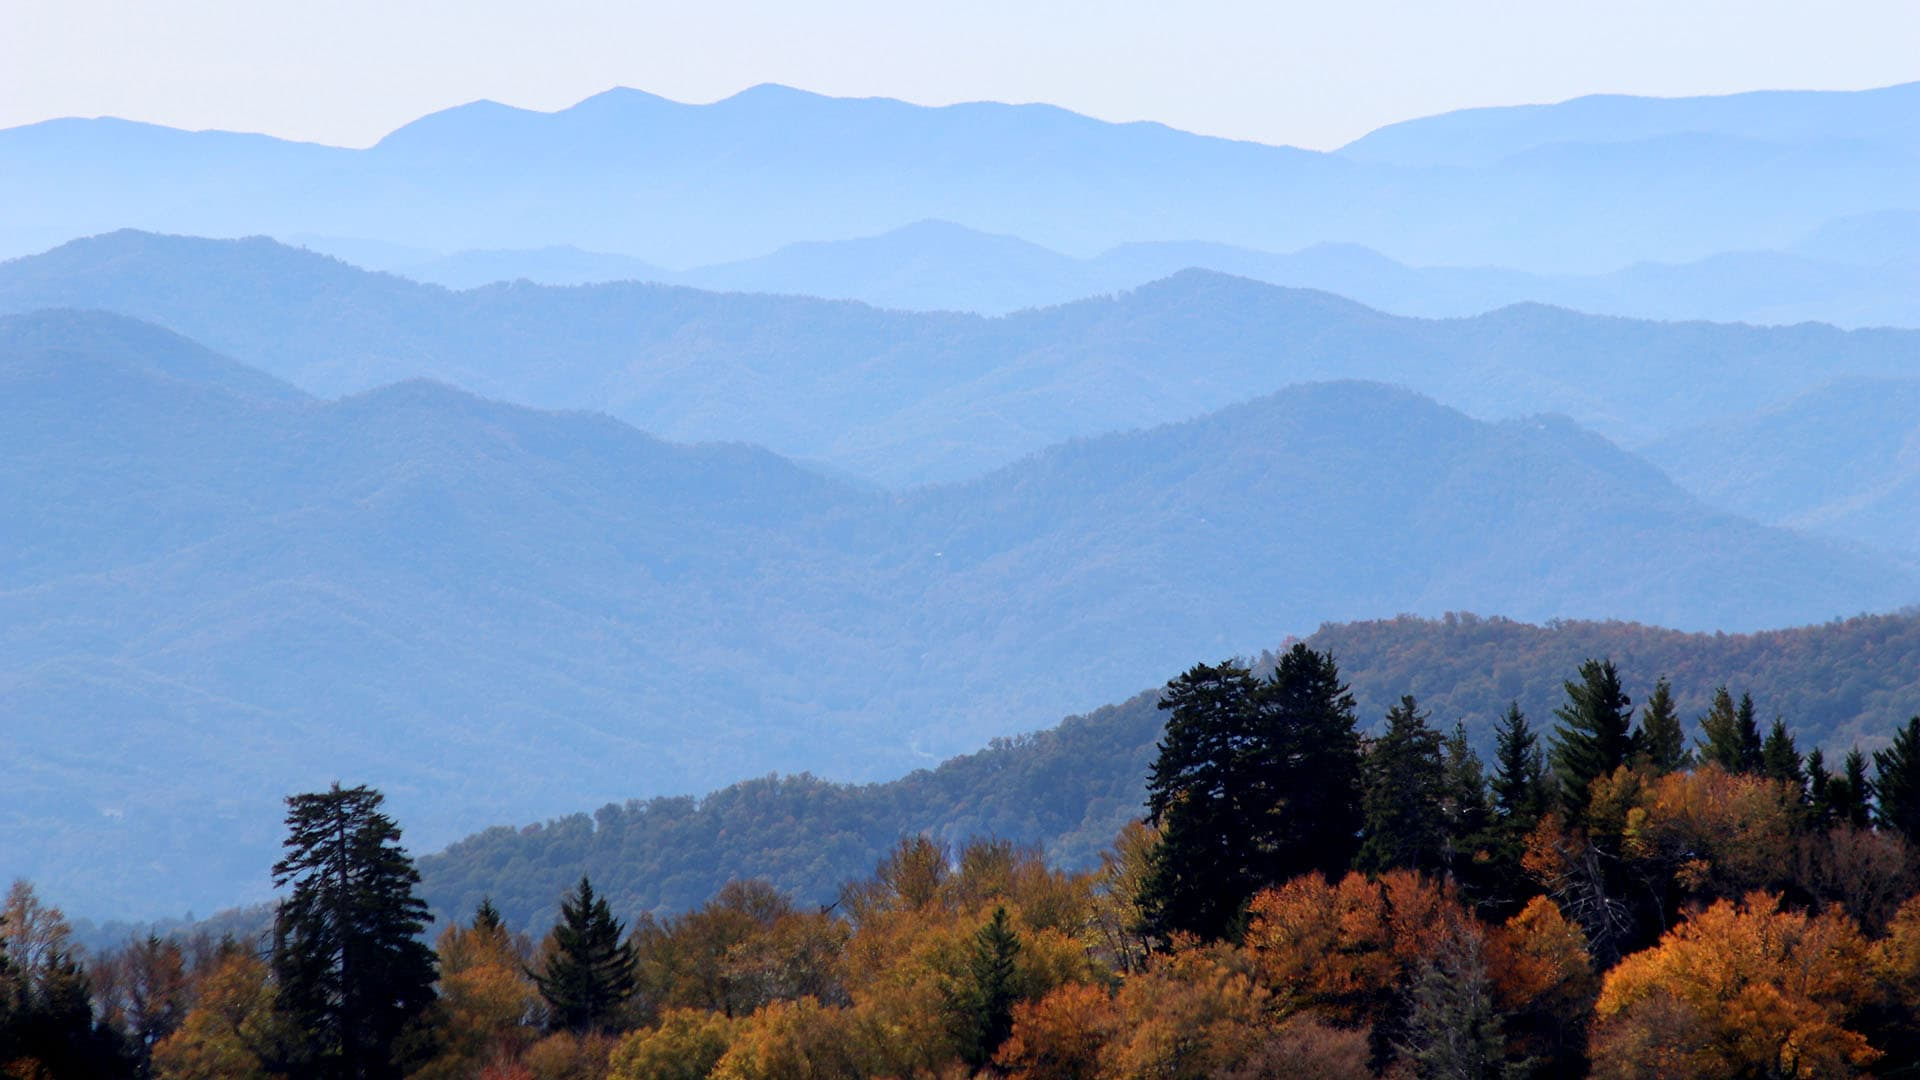 A hint of autumn adds to the ridegetop views of Great Smoky Mountains National Park.